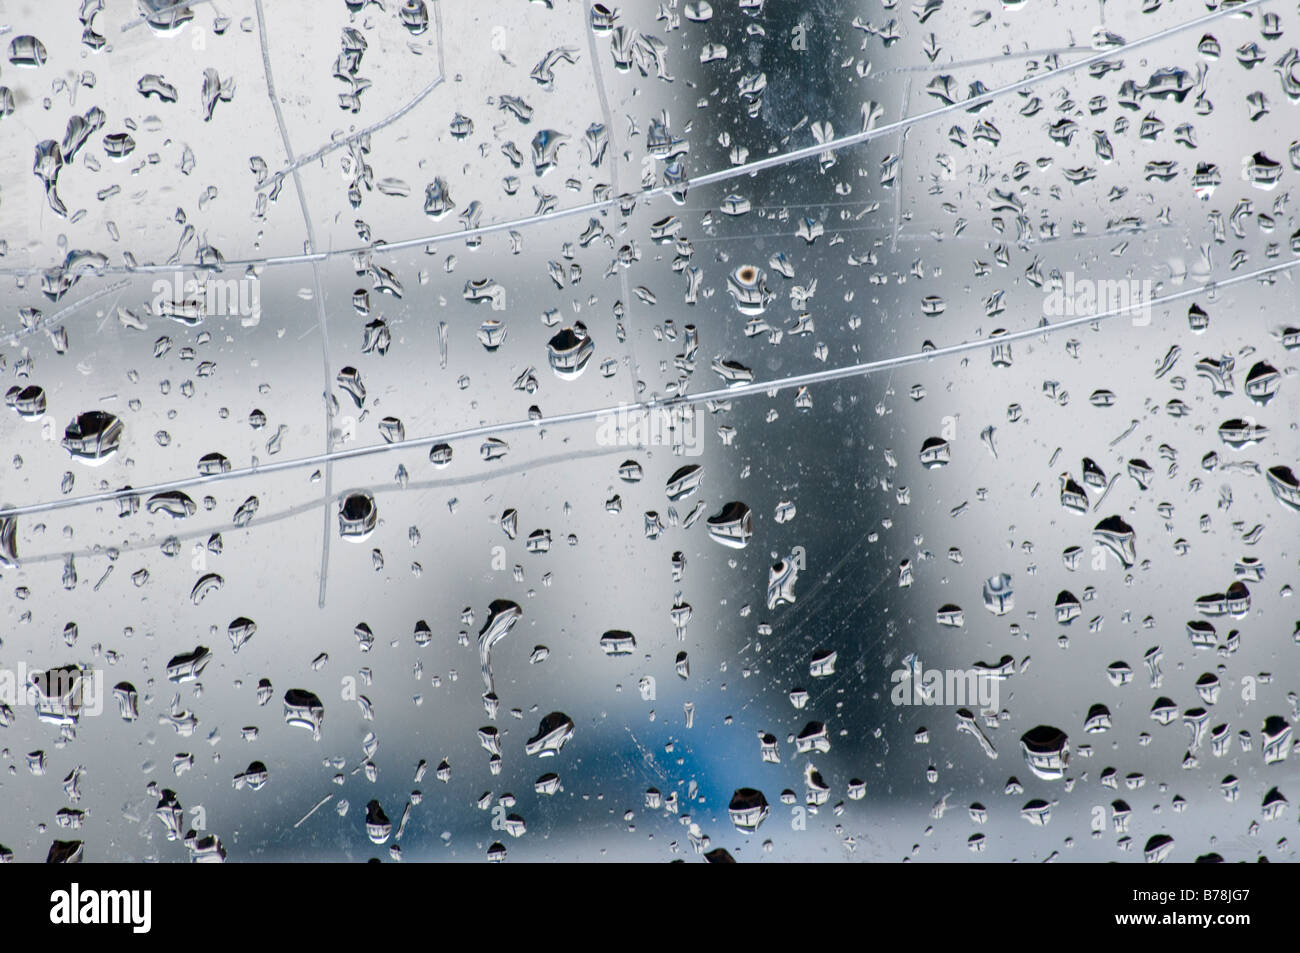 Gouttes de pluie sur la fenêtre, full frame, close-up Photo Stock